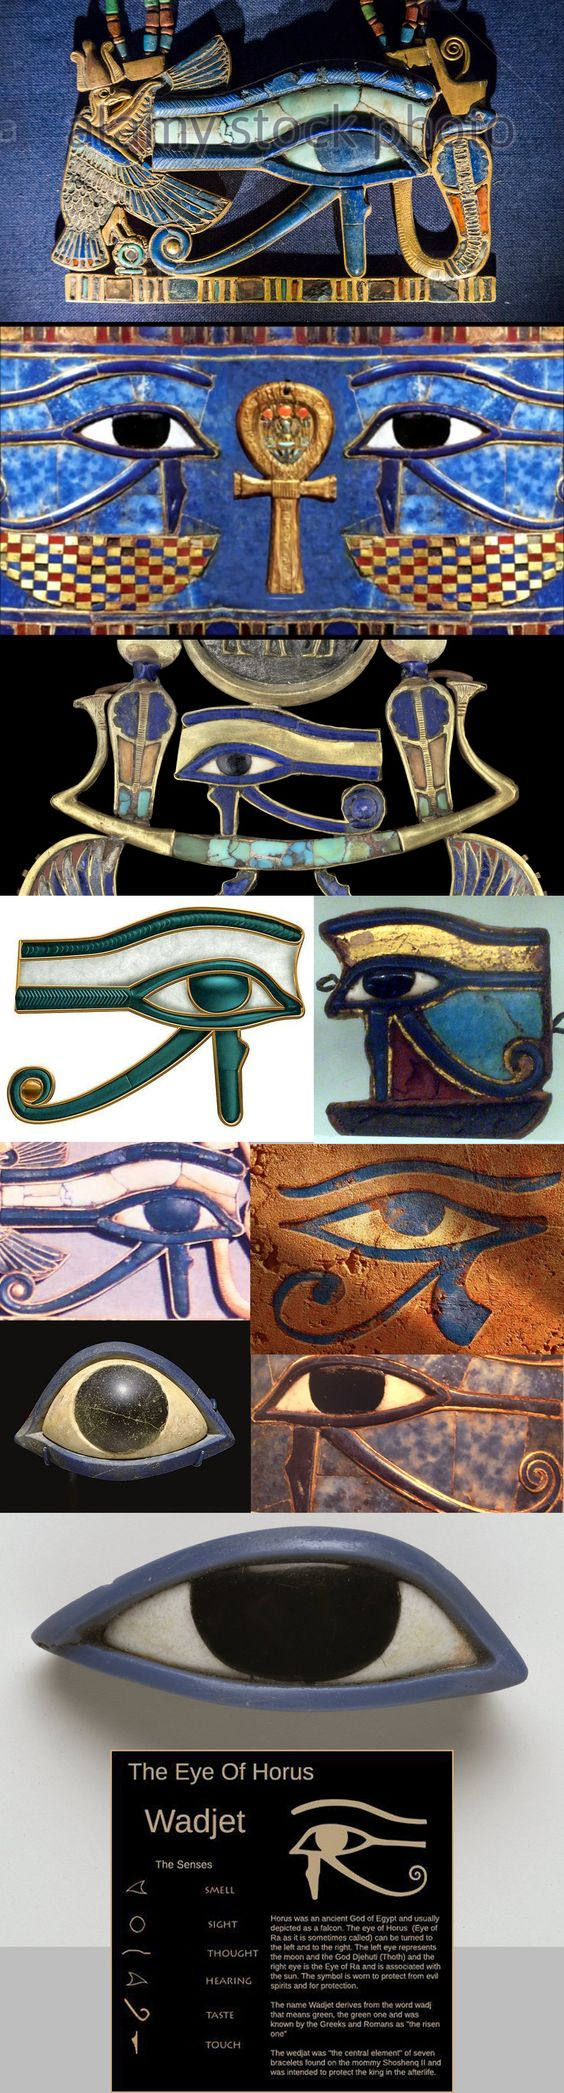 the eye of hour ... Ra More